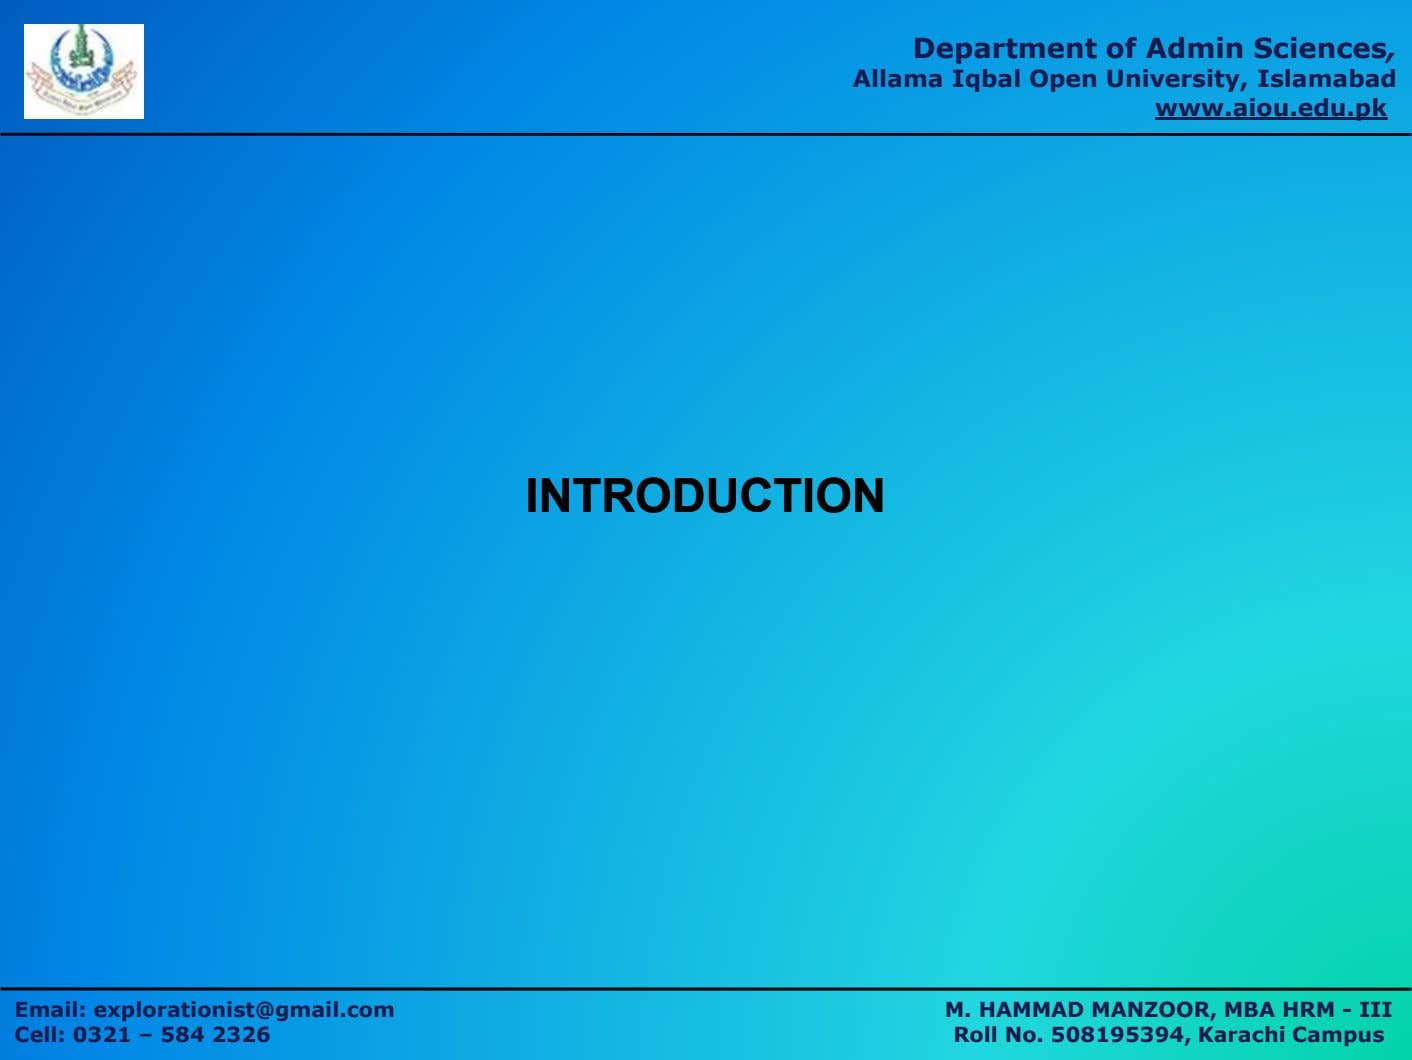 Department of Admin Sciences, Allama Iqbal Open University, Islamabad www.aiou.edu.pk INTRODUCTIONINTRODUCTION Email: